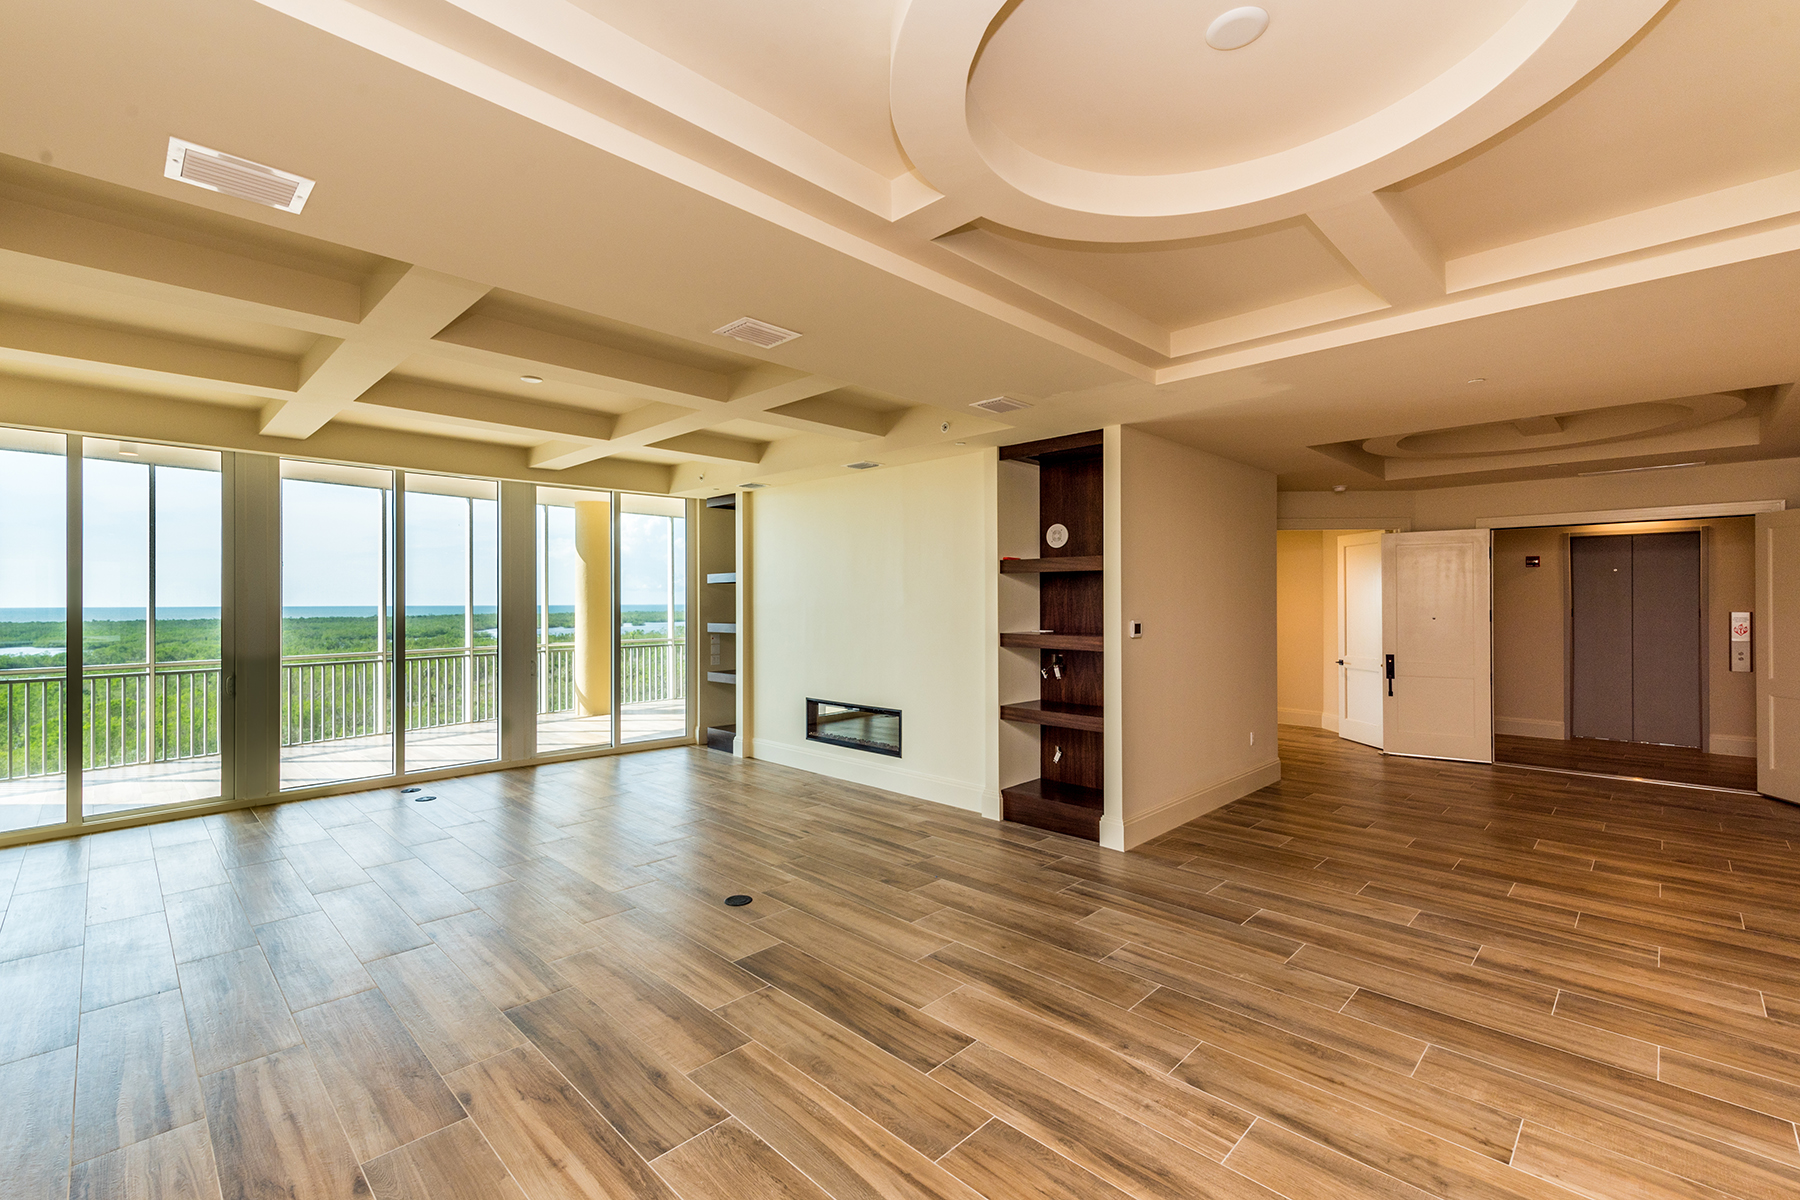 Additional photo for property listing at AQUA AT PELICAN ISLE 13665  Vanderbilt Dr 903,  Naples, Florida 34110 United States